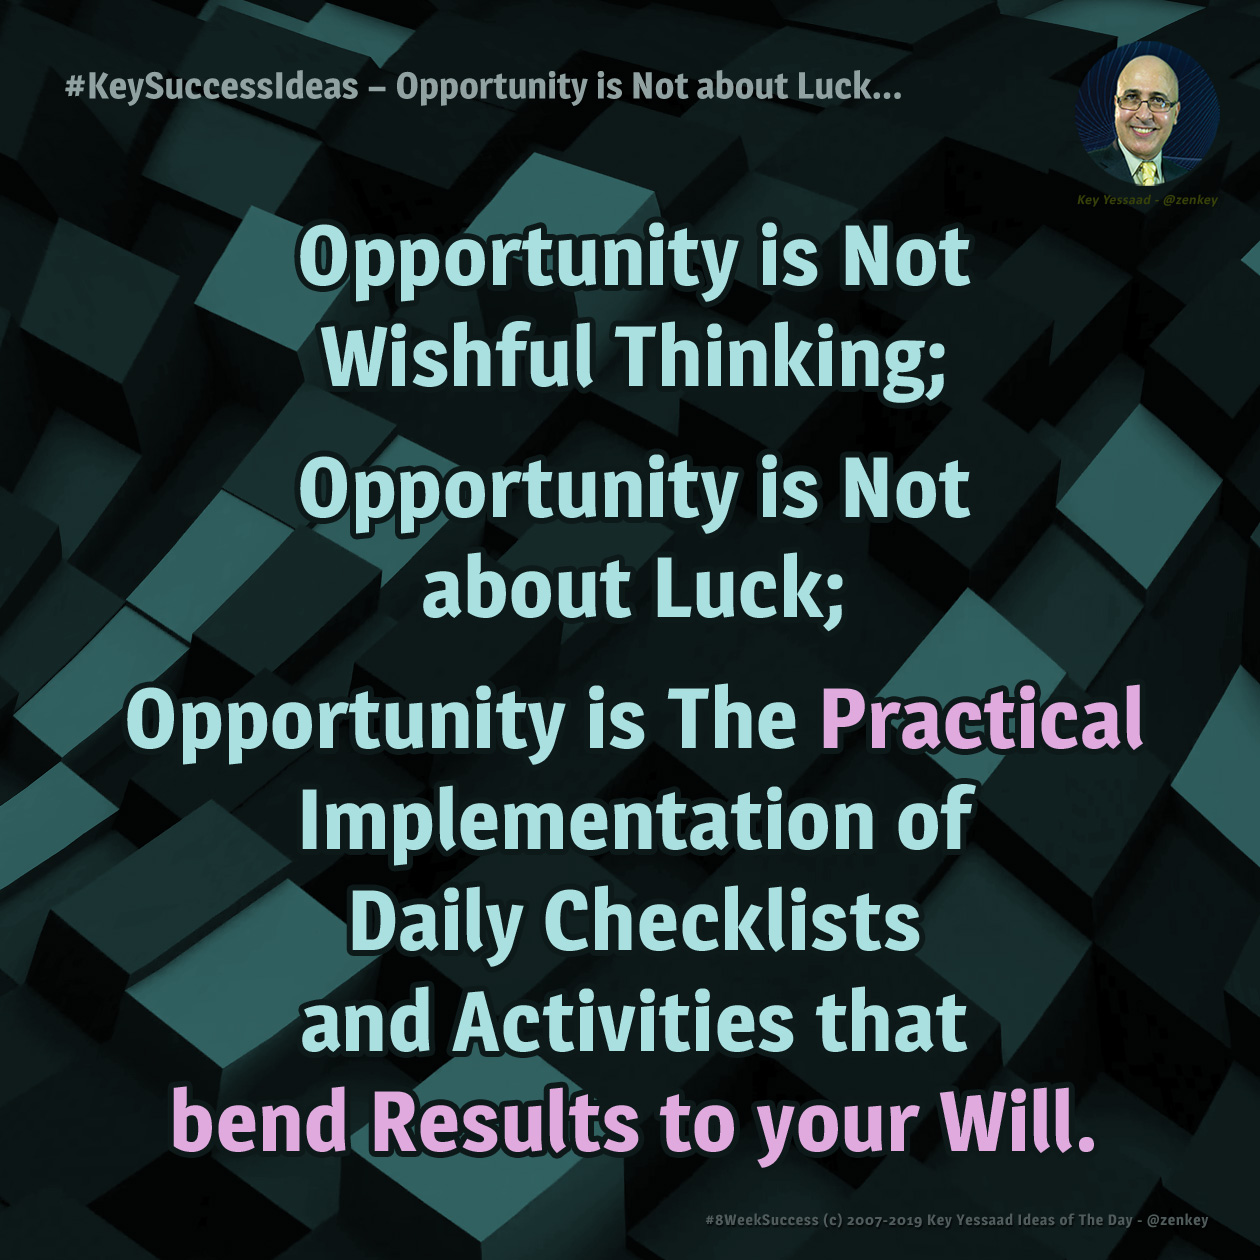 #KeySuccessIdeas - Opportunity is Not about Luck...